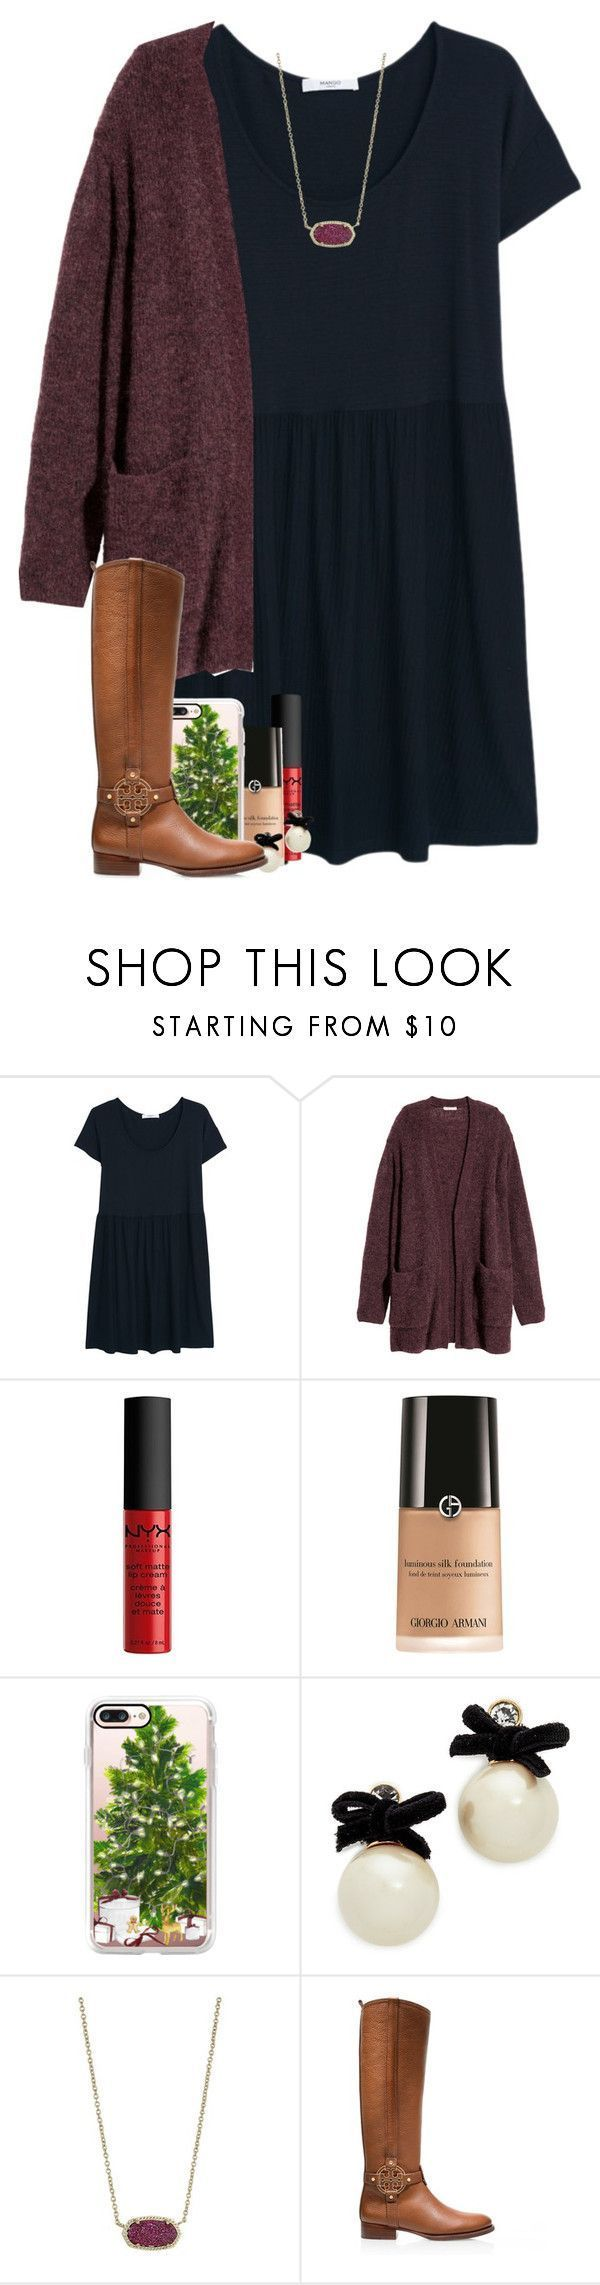 """""""day fourteen: lighting the advent candle"""" by madelinelurene � liked on Polyvore featuring MANGO, H&M, NYX, Giorgio Armani, Casetify, Kate Spade, Kendra Scott, Tory Burch and gabschristmascontest17"""